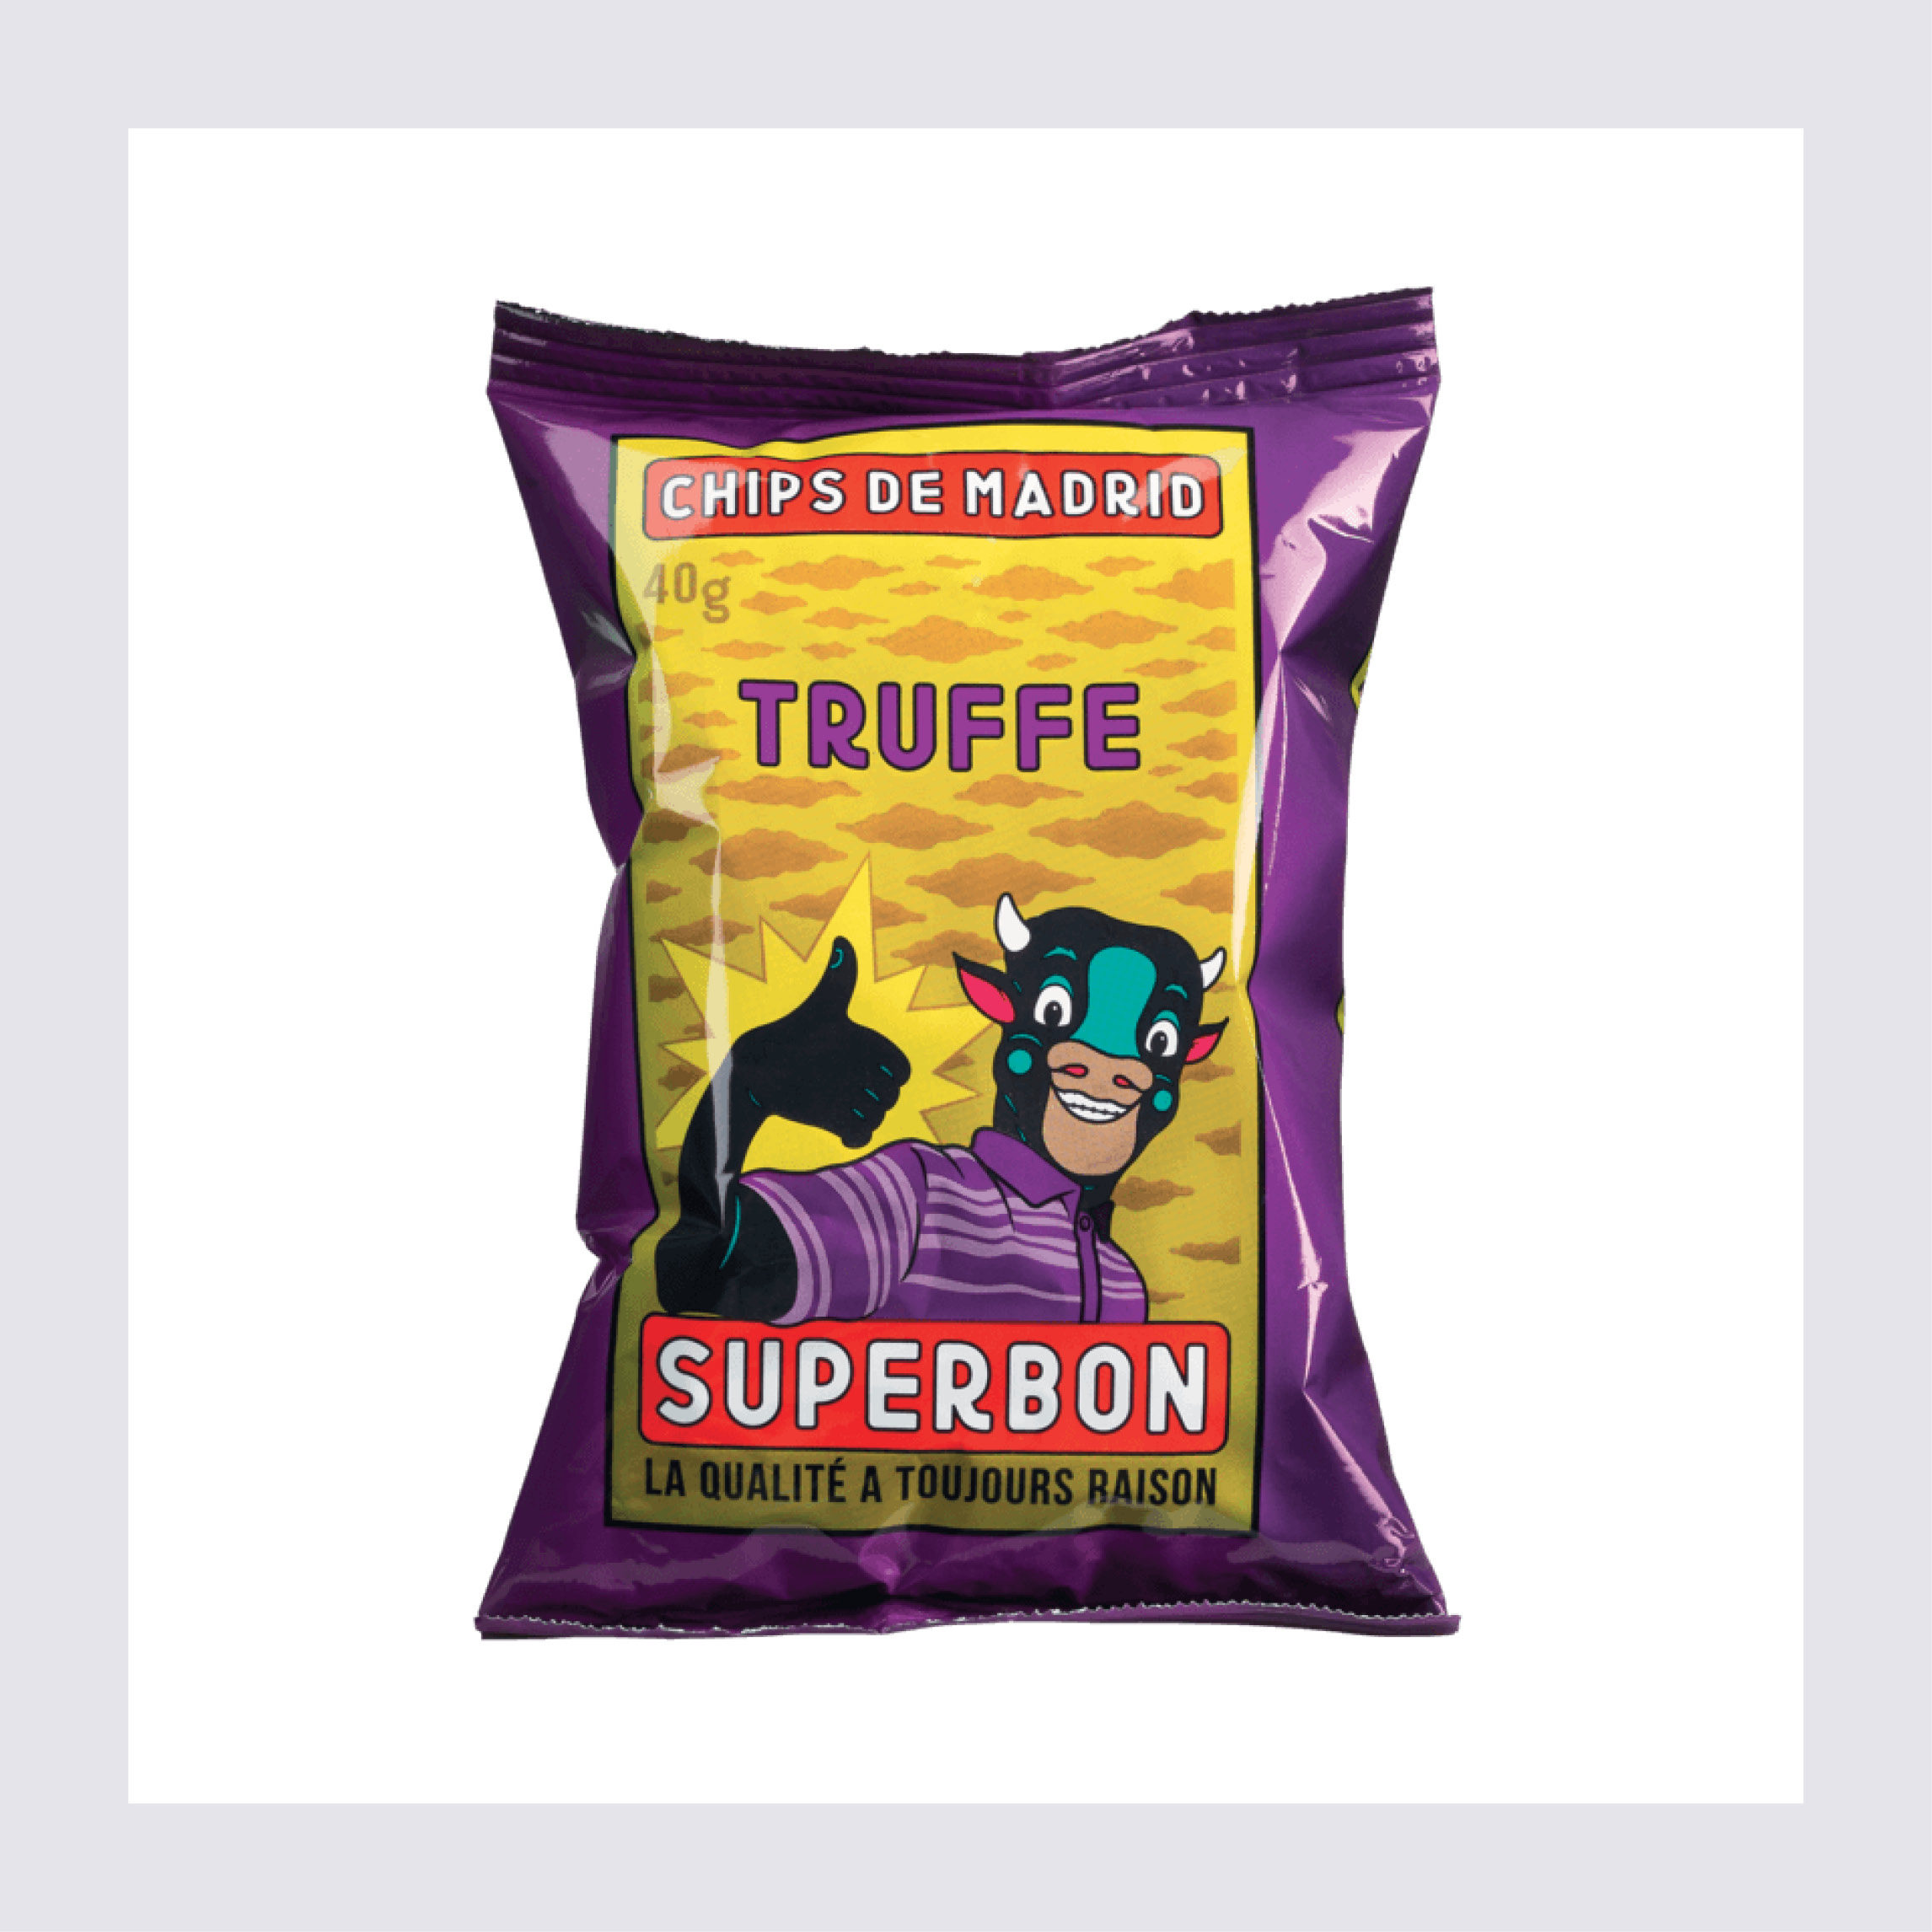 Chips de Madrid Truffe X Superbon